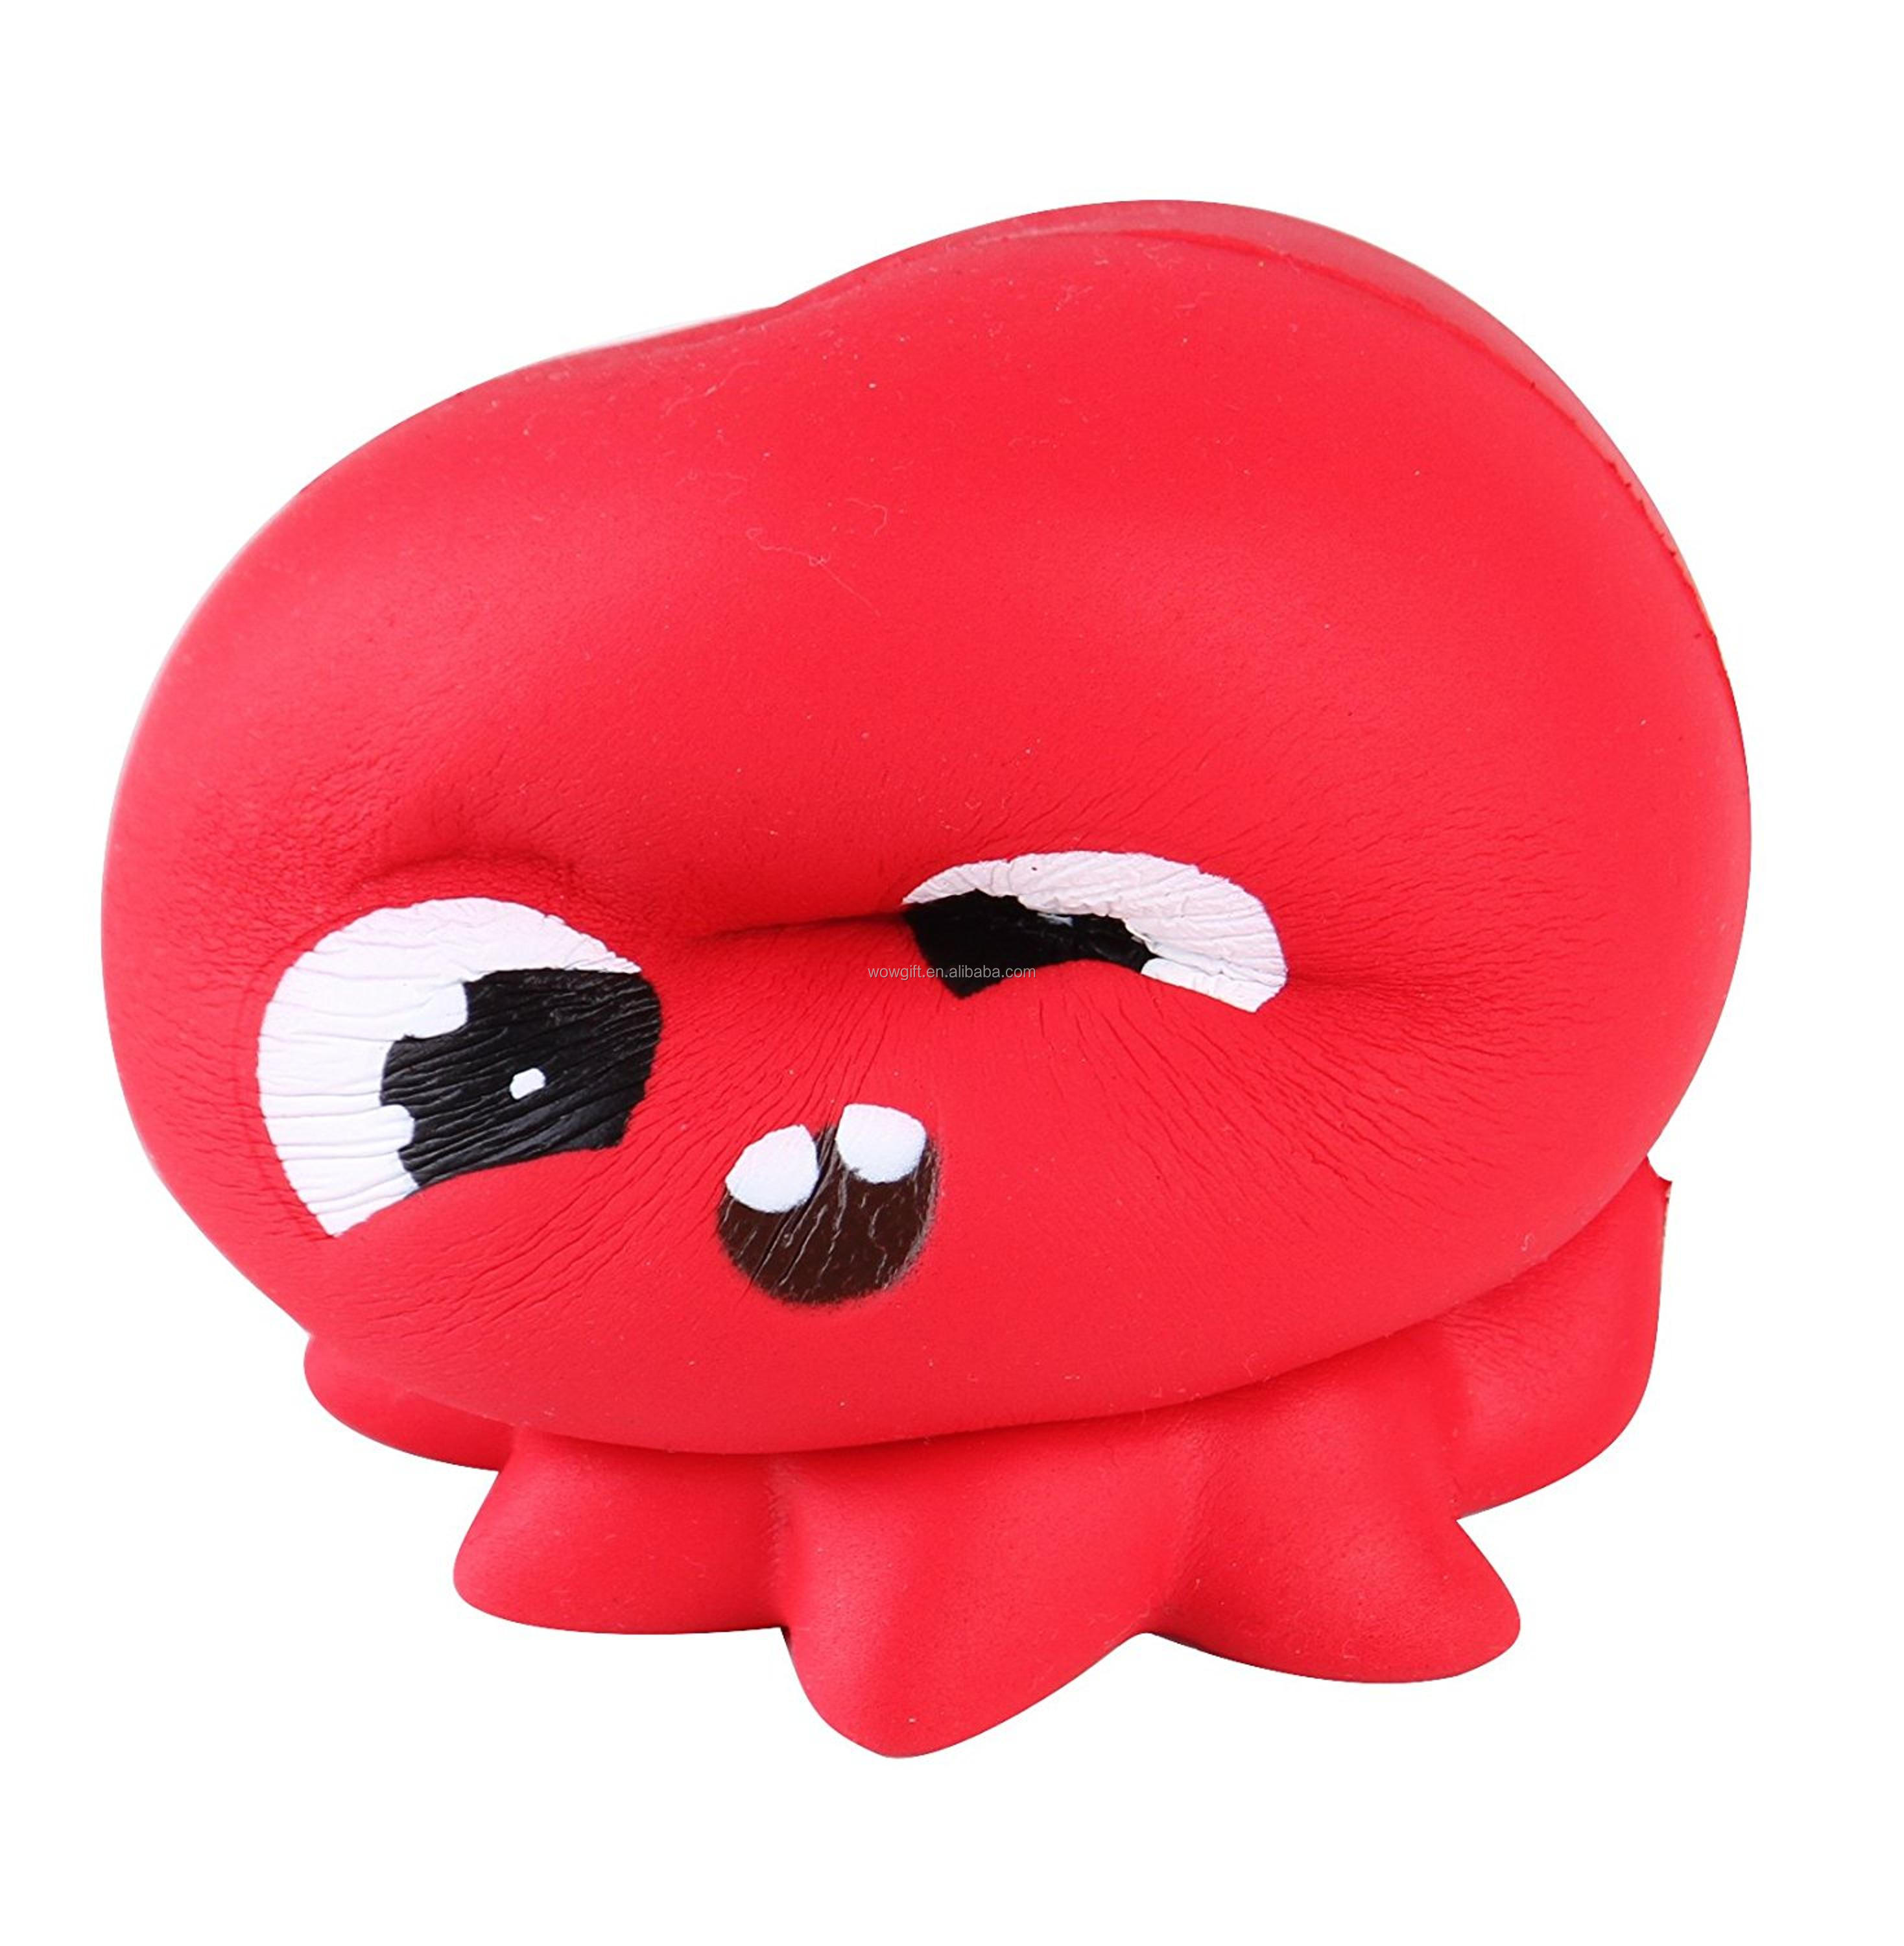 Jumbo Squishies Octopus Scented Squishies Slow Rising OcKawaii Stress Relief Toy